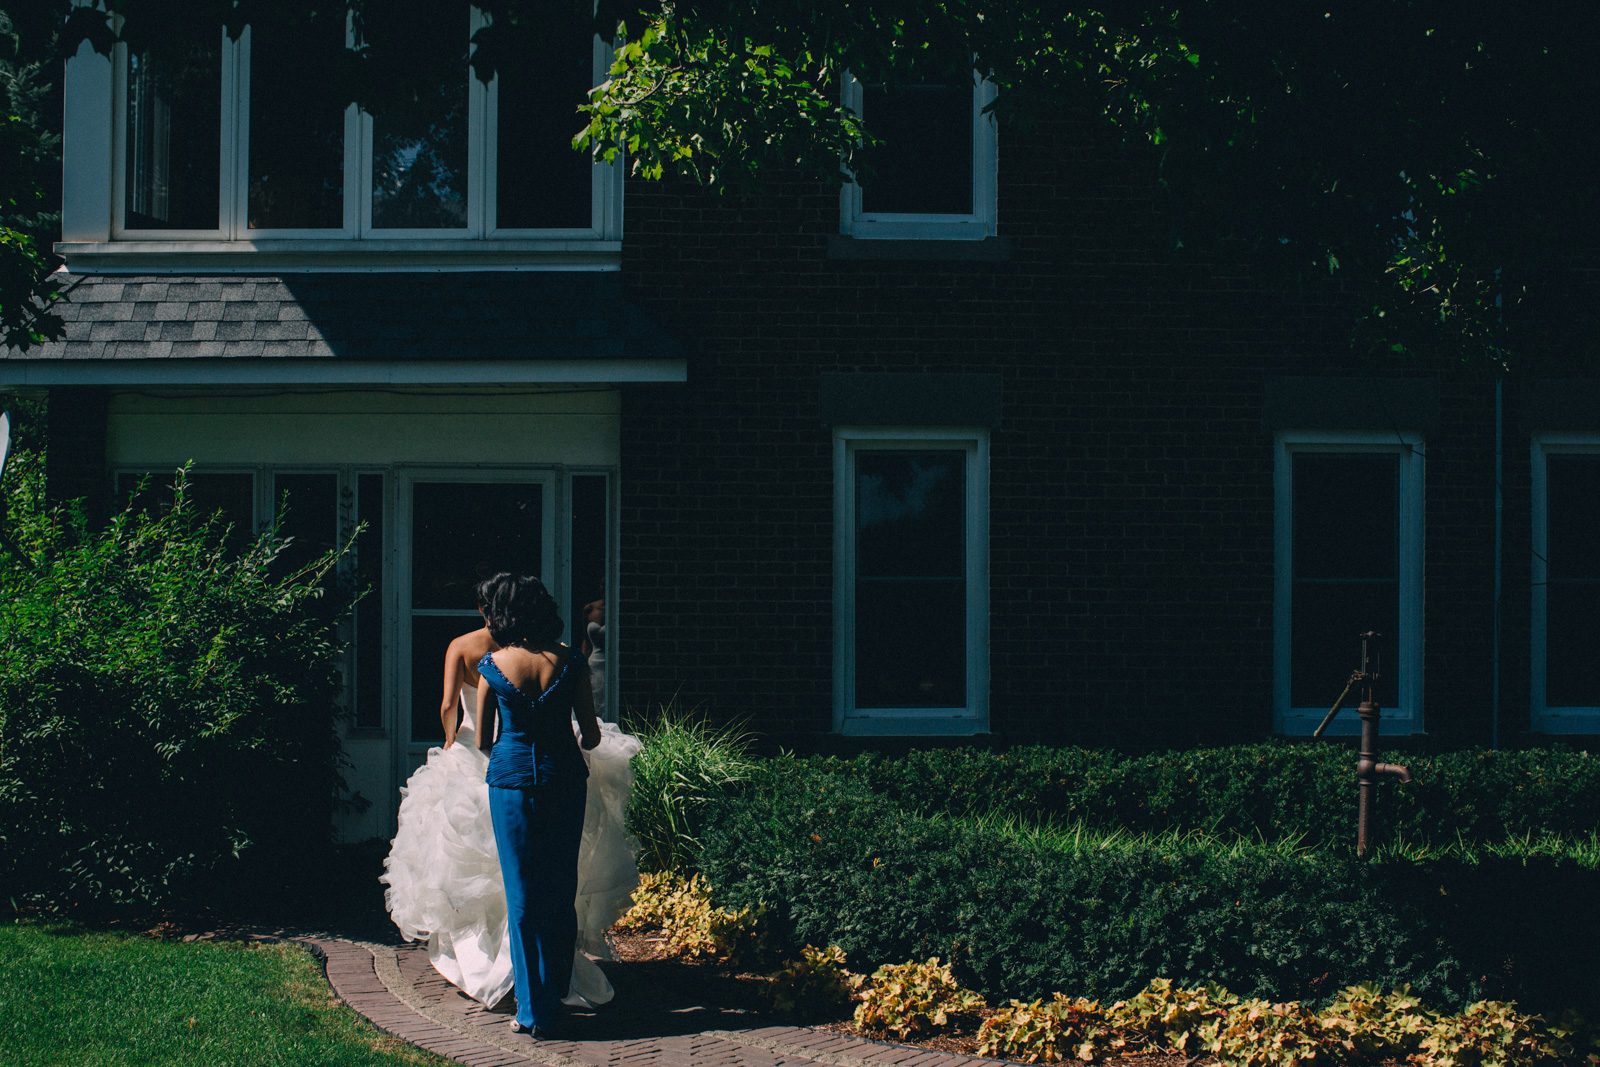 cambium-farms-wedding-photography-by-sam-wong-of-artanis-collective_31